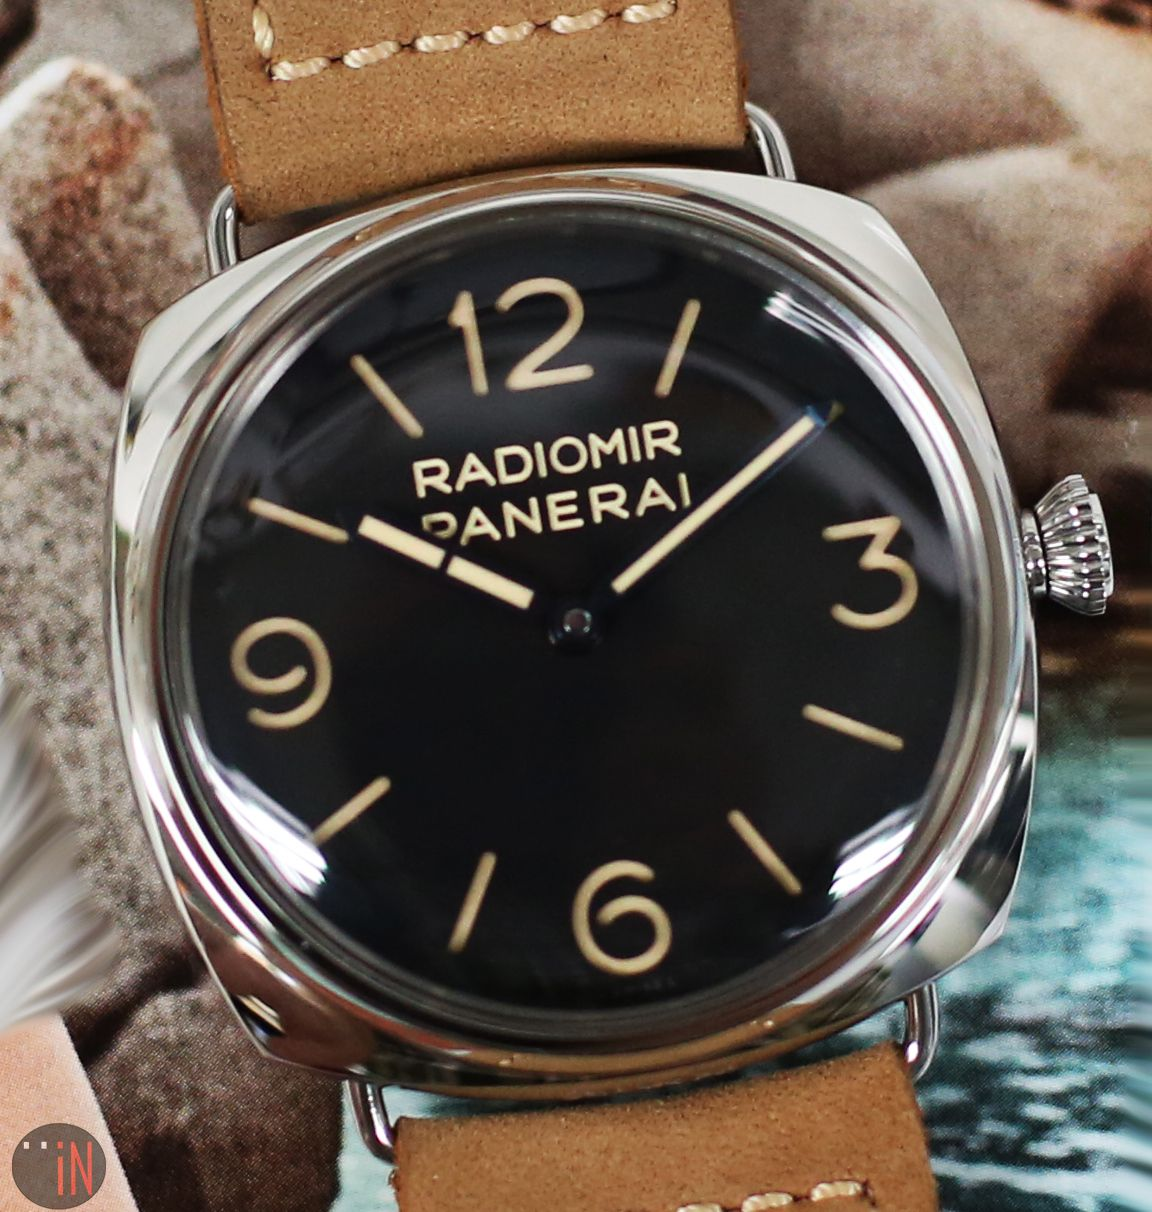 Pin By Element In Time Watches On Officine Panerai Watches In 2019